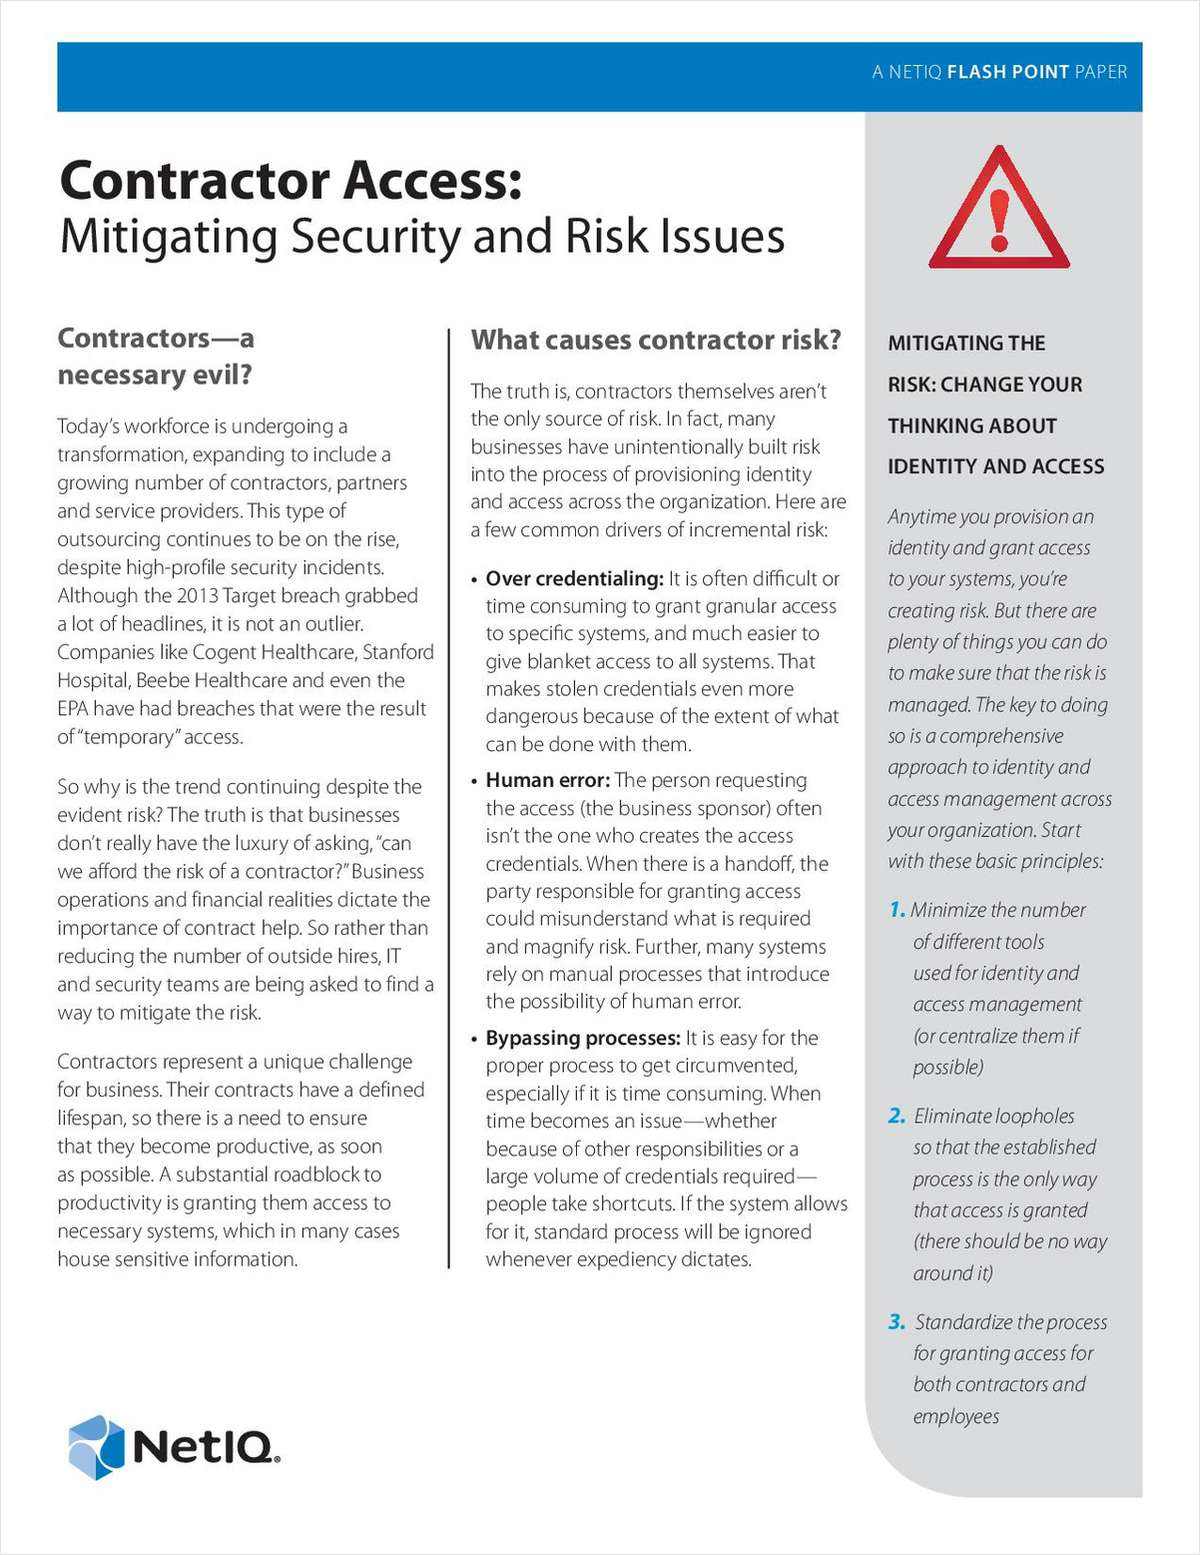 Contractor Access: Mitigating Security and Risk Issues